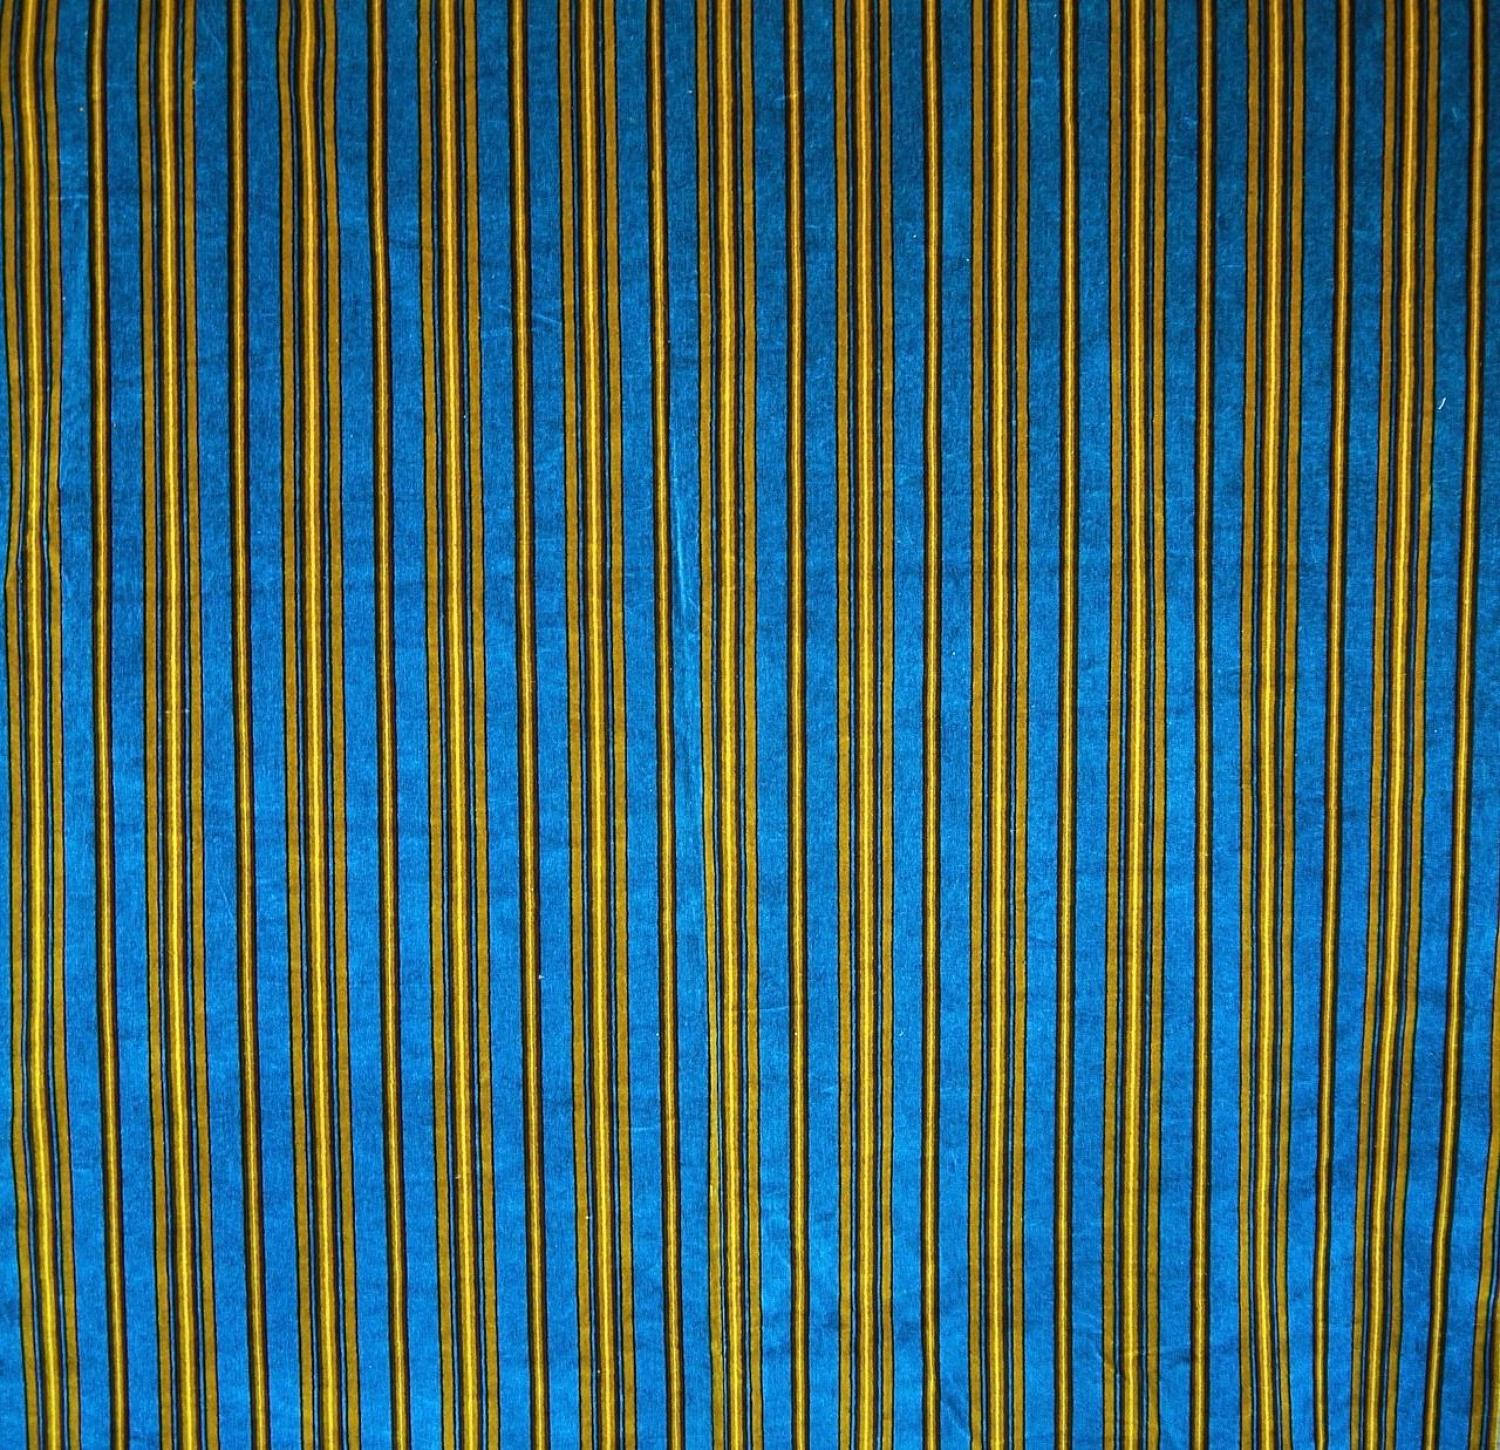 Blue and yellow Striped Cotton Velvet French Napoleon III 19th Century